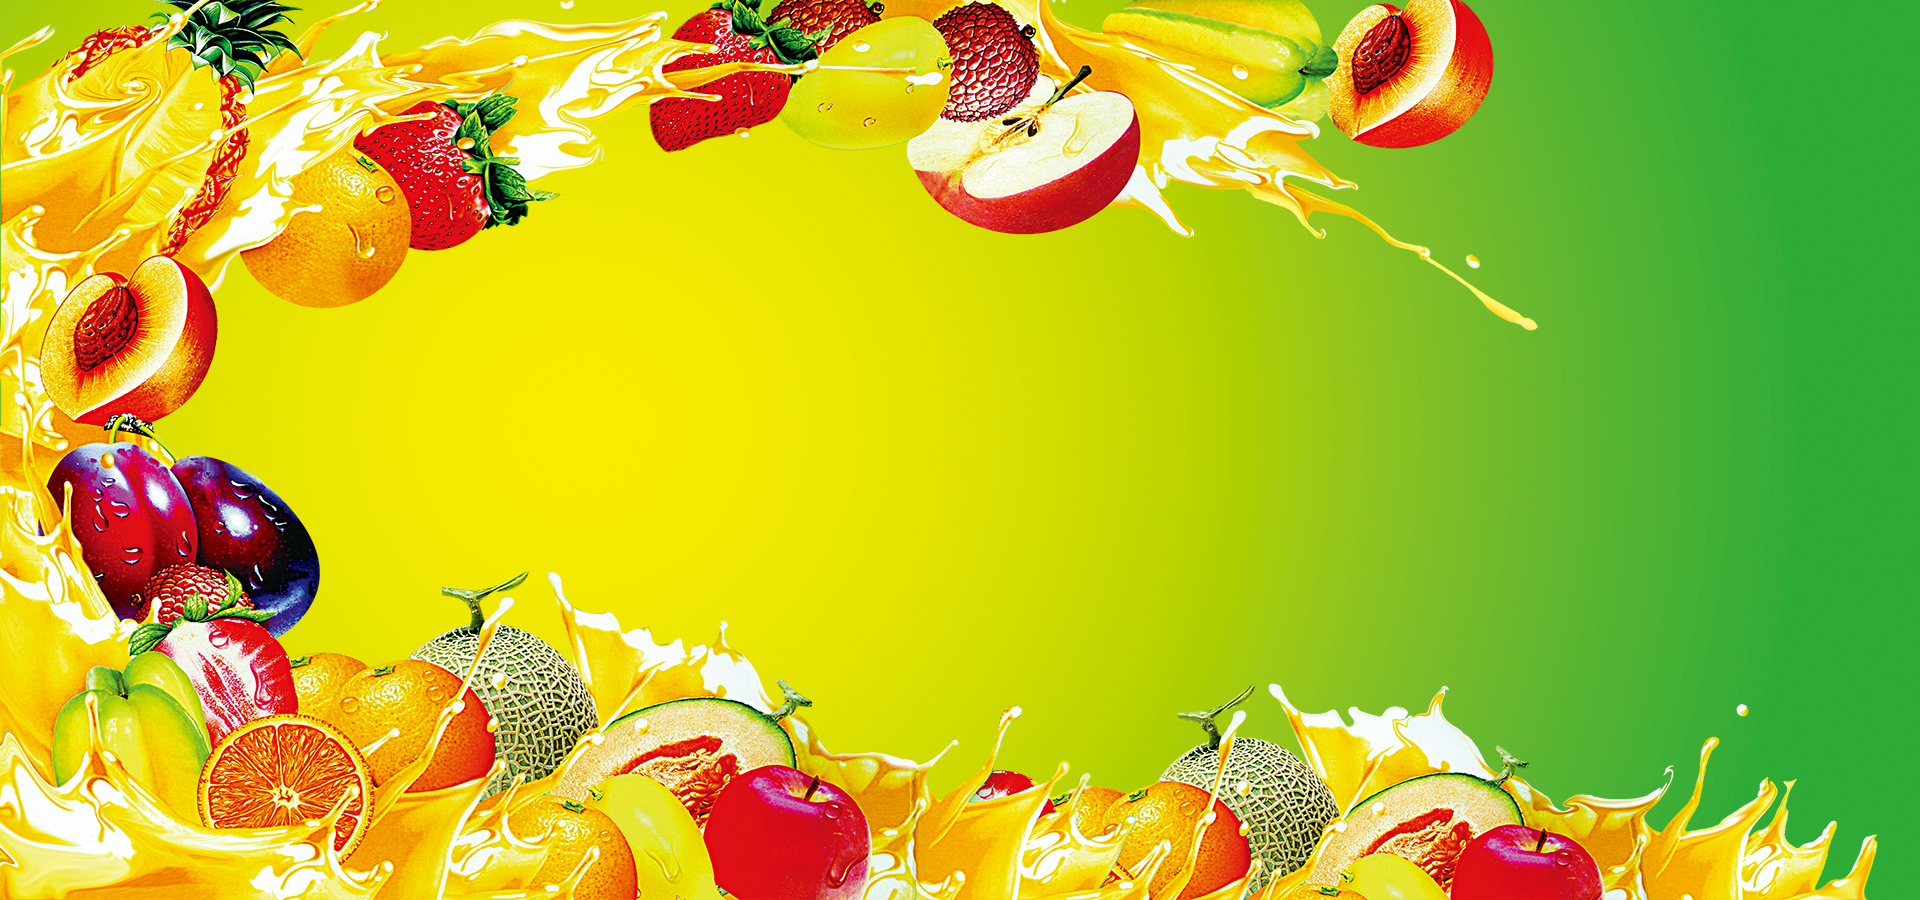 colorful fruits background  fruit  peach  strawberry